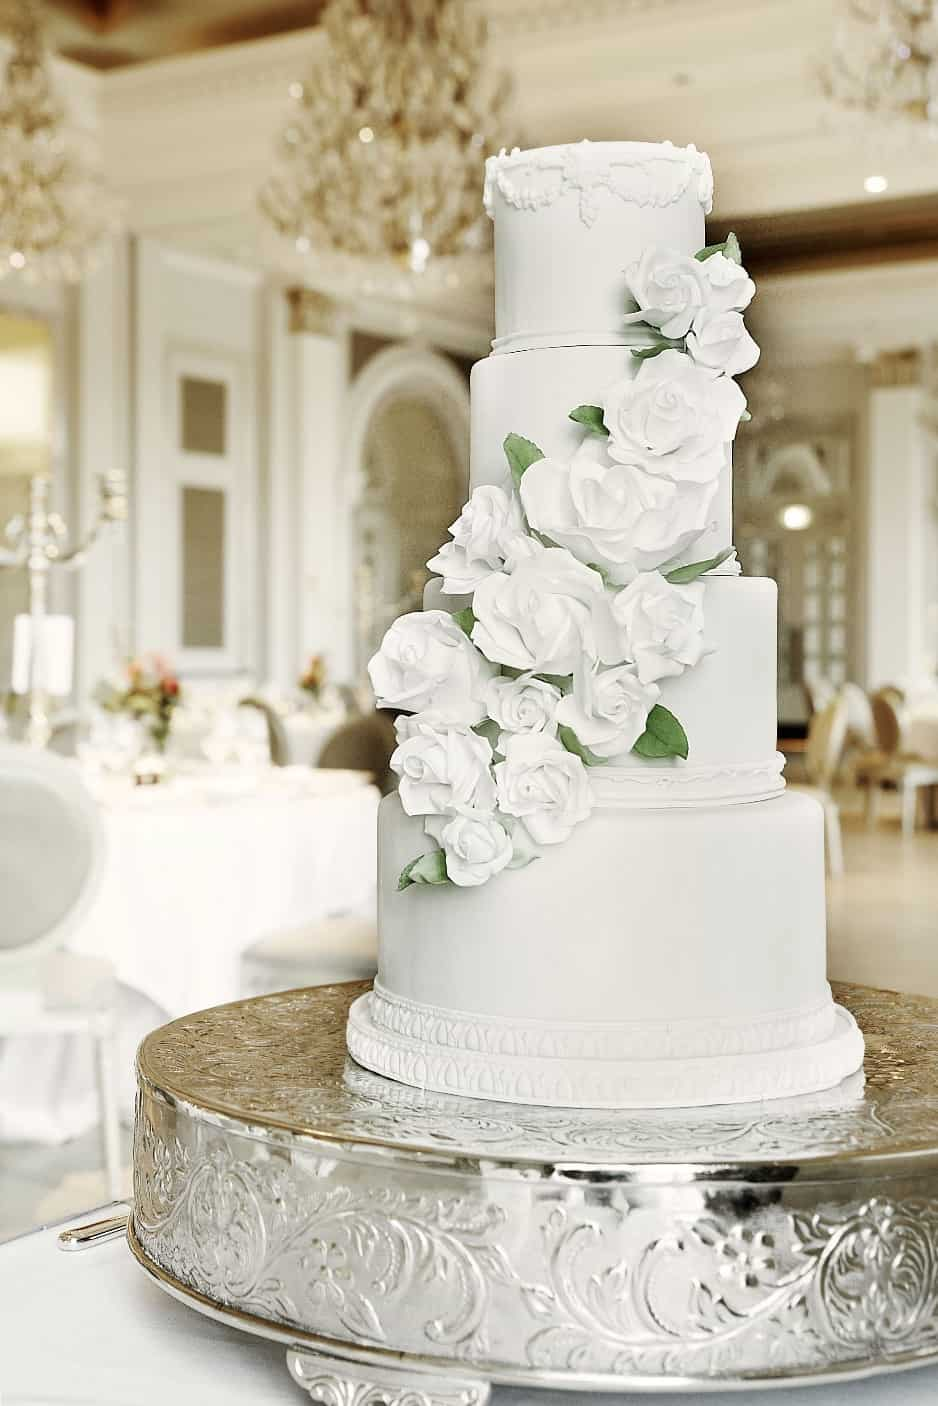 Adare Manor White Rose Wedding Cake MMCookies